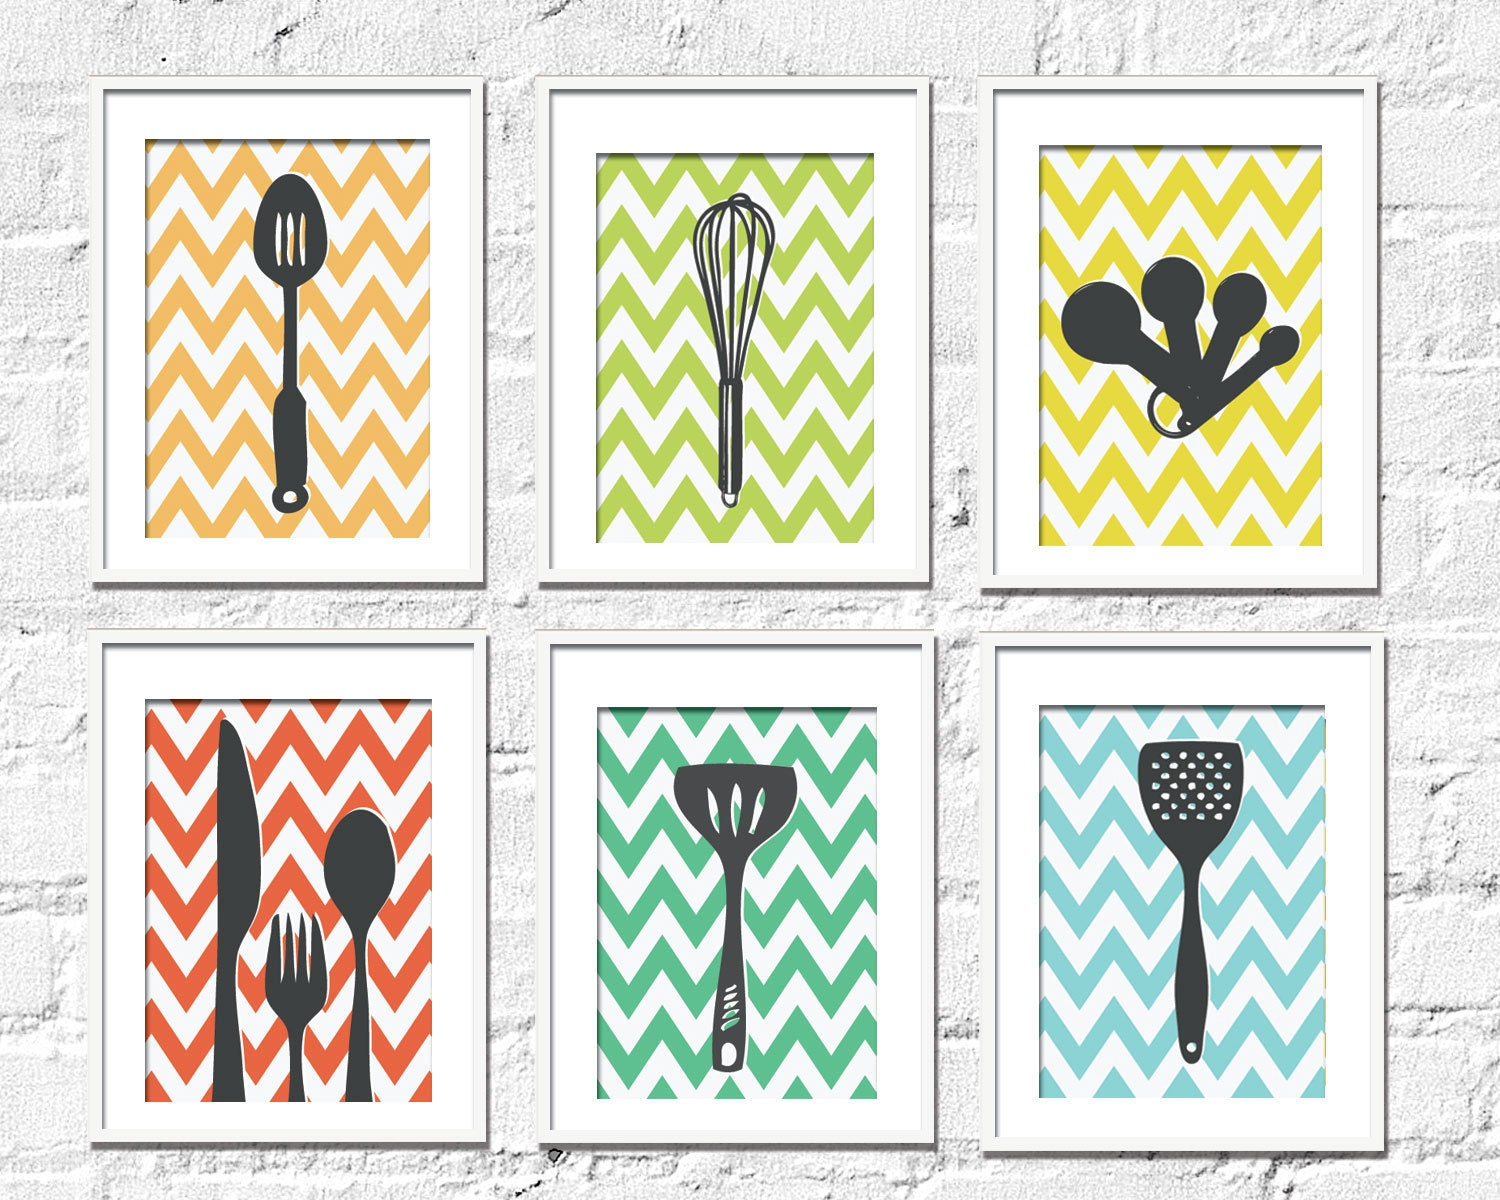 Kitchen Art Prints Chevron Kitchen Set Of 6 8x10 By. Norse Signs Of Stroke. Recycling Signs. Corporate Office Signs. Co Signing Signs. Sign Moon Signs. Trend Signs Of Stroke. Homeless Signs. Fair Signs